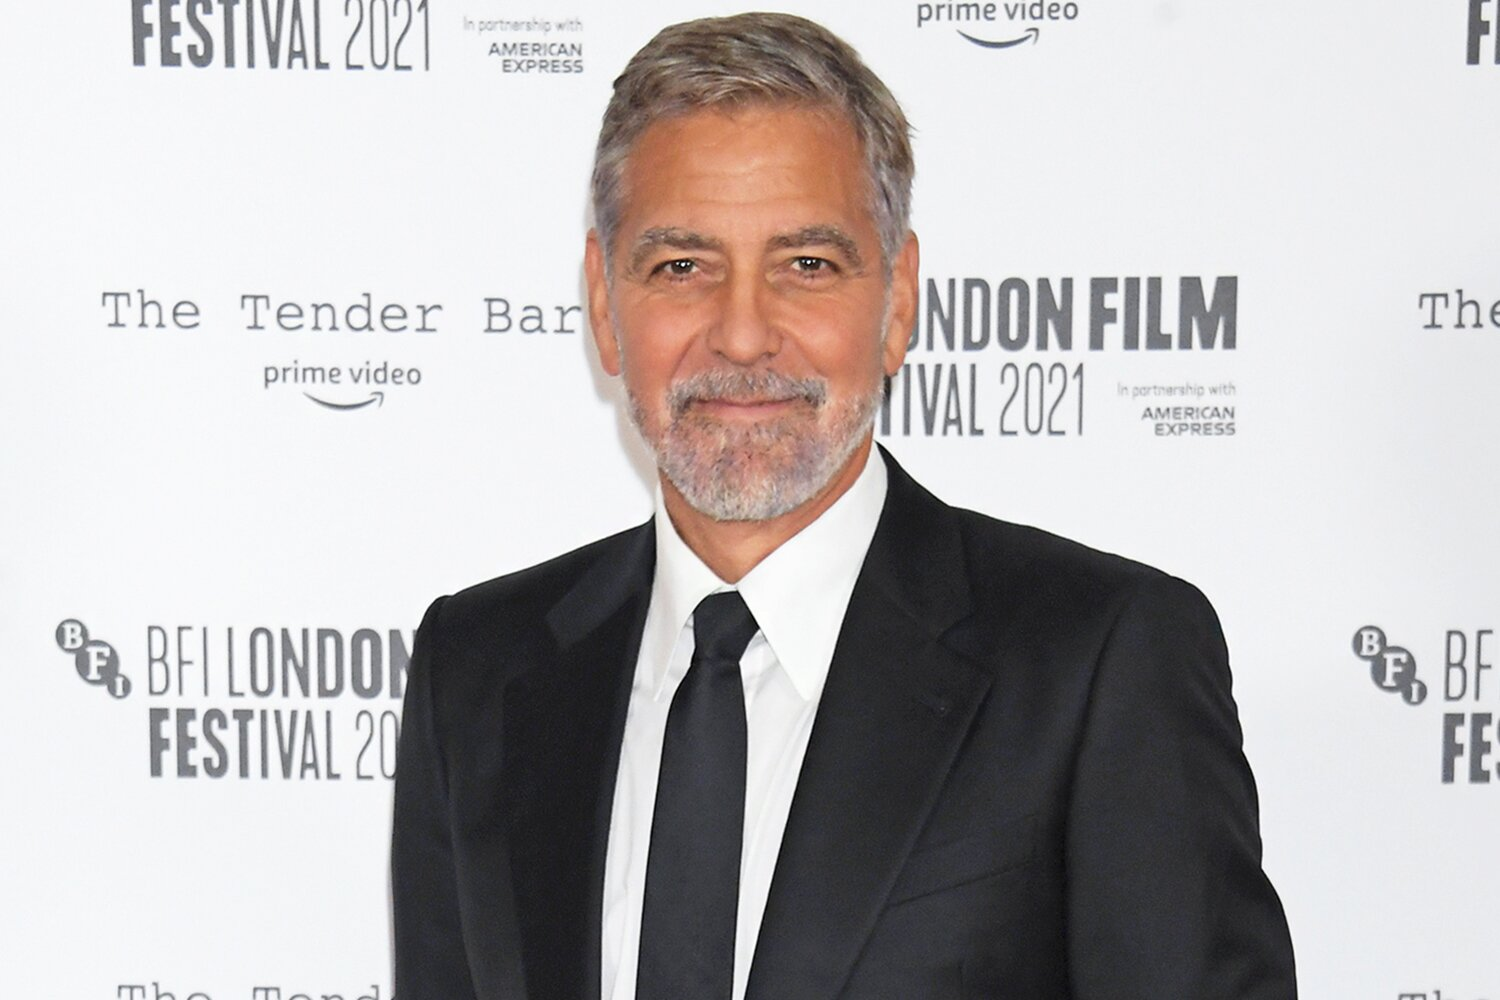 George Clooney Does Not Plan to Run for Office in the Future: I 'Would Like to Have a Nice Life' Image?url=https%3A%2F%2Fstatic.onecms.io%2Fwp-content%2Fuploads%2Fsites%2F20%2F2021%2F10%2F10%2FGeorge-Clooney-1